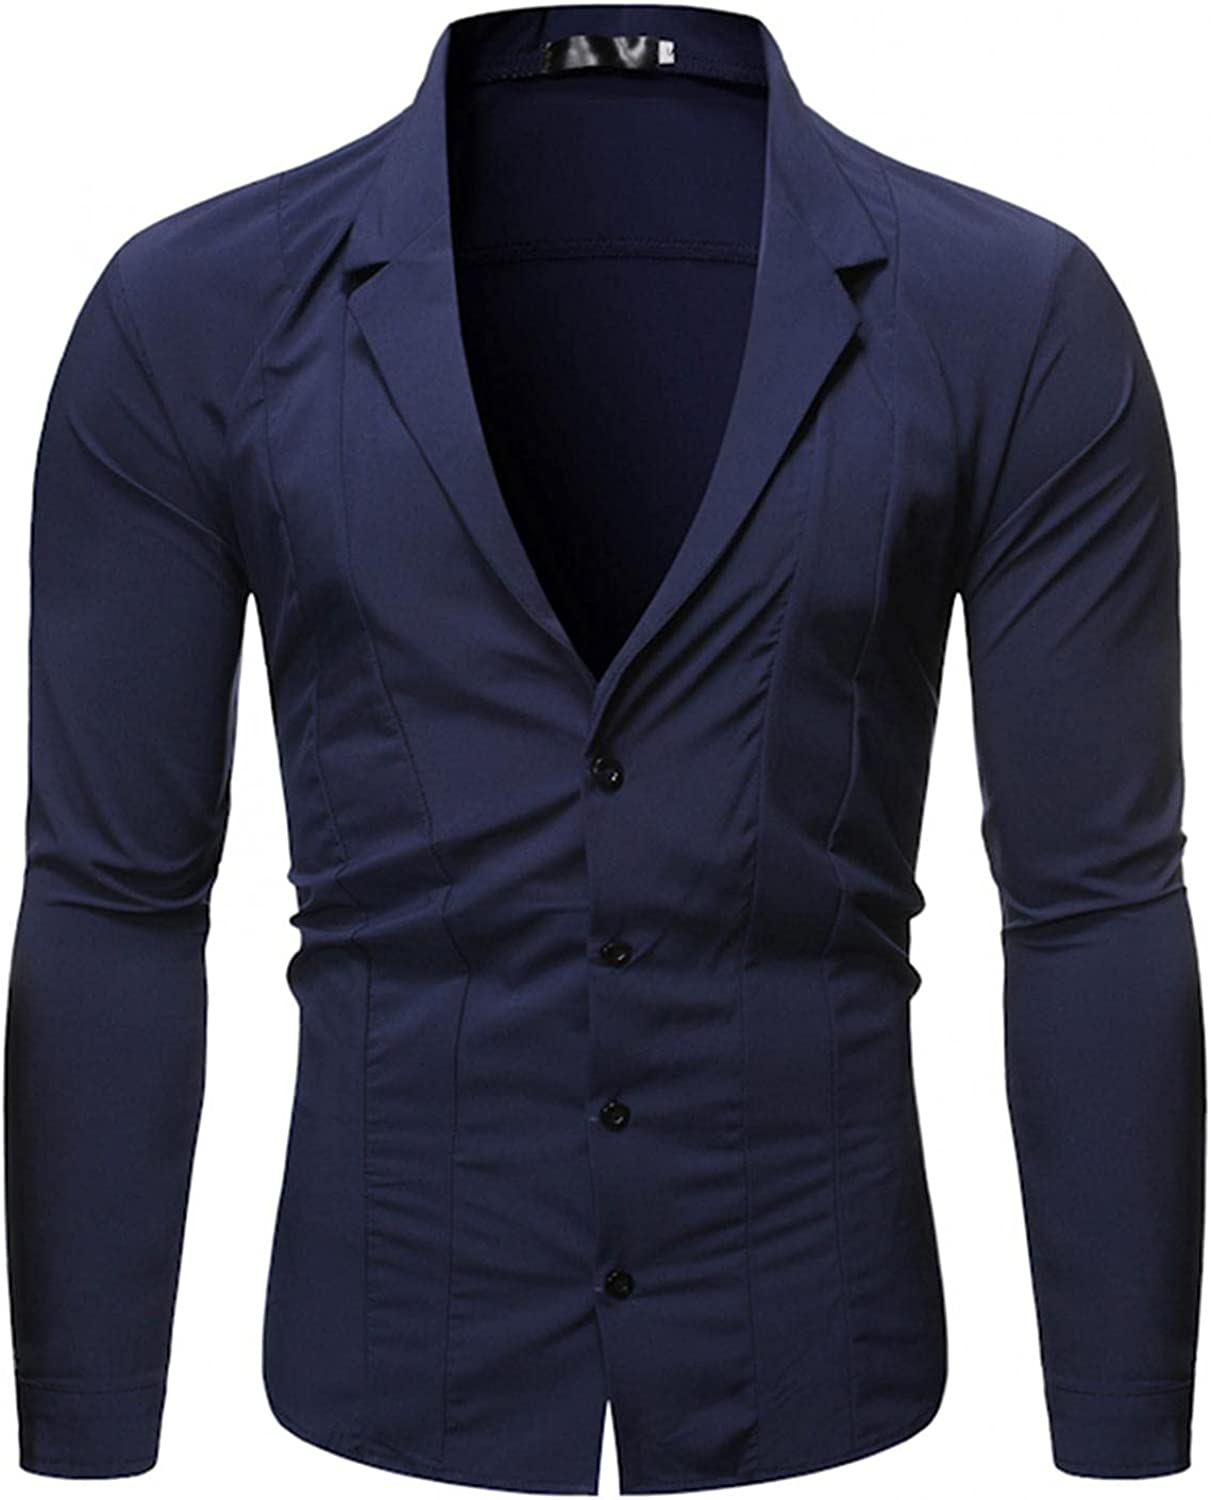 JSPOYOU Mens Business Dress Shirts Long Sleeve Button Down Casual Slim Fit Formal Office Design Shirts Jackets